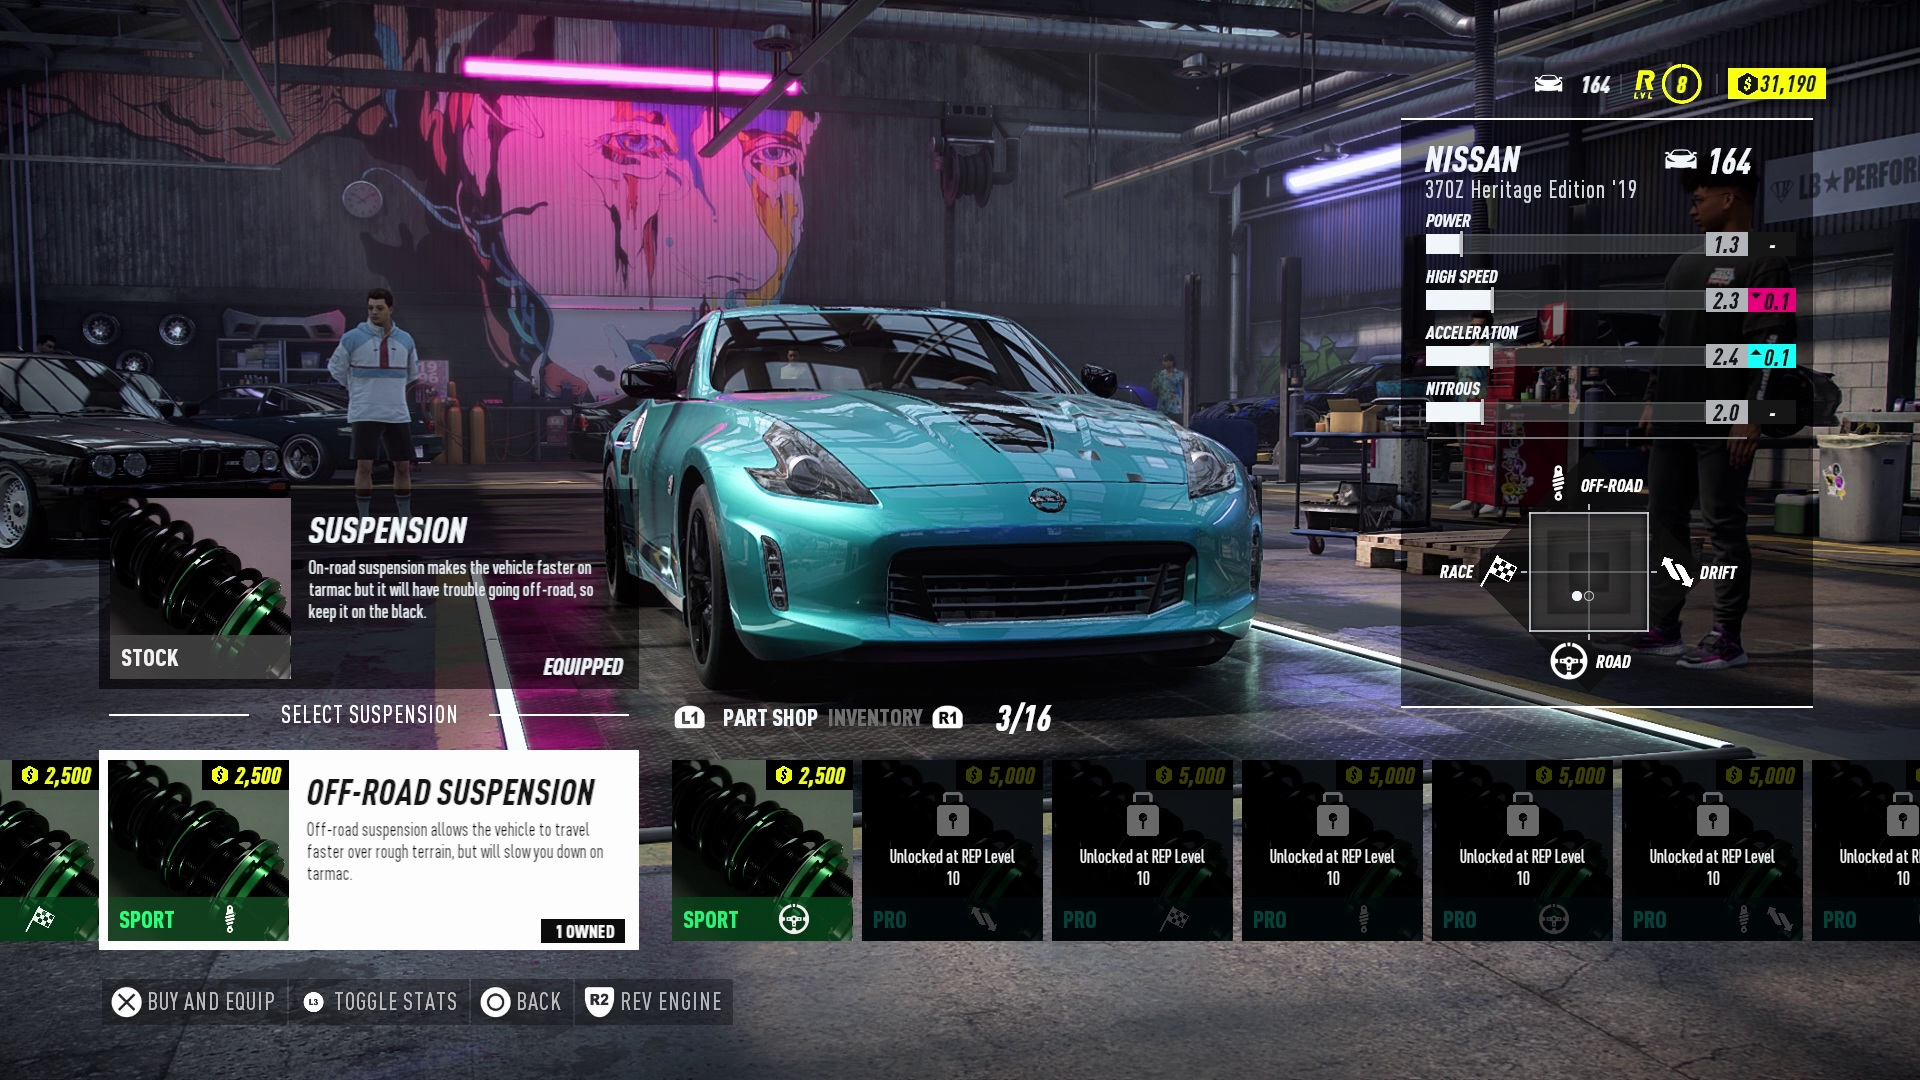 Personalizacion de tus vehiculos en Need For Speed - Heat